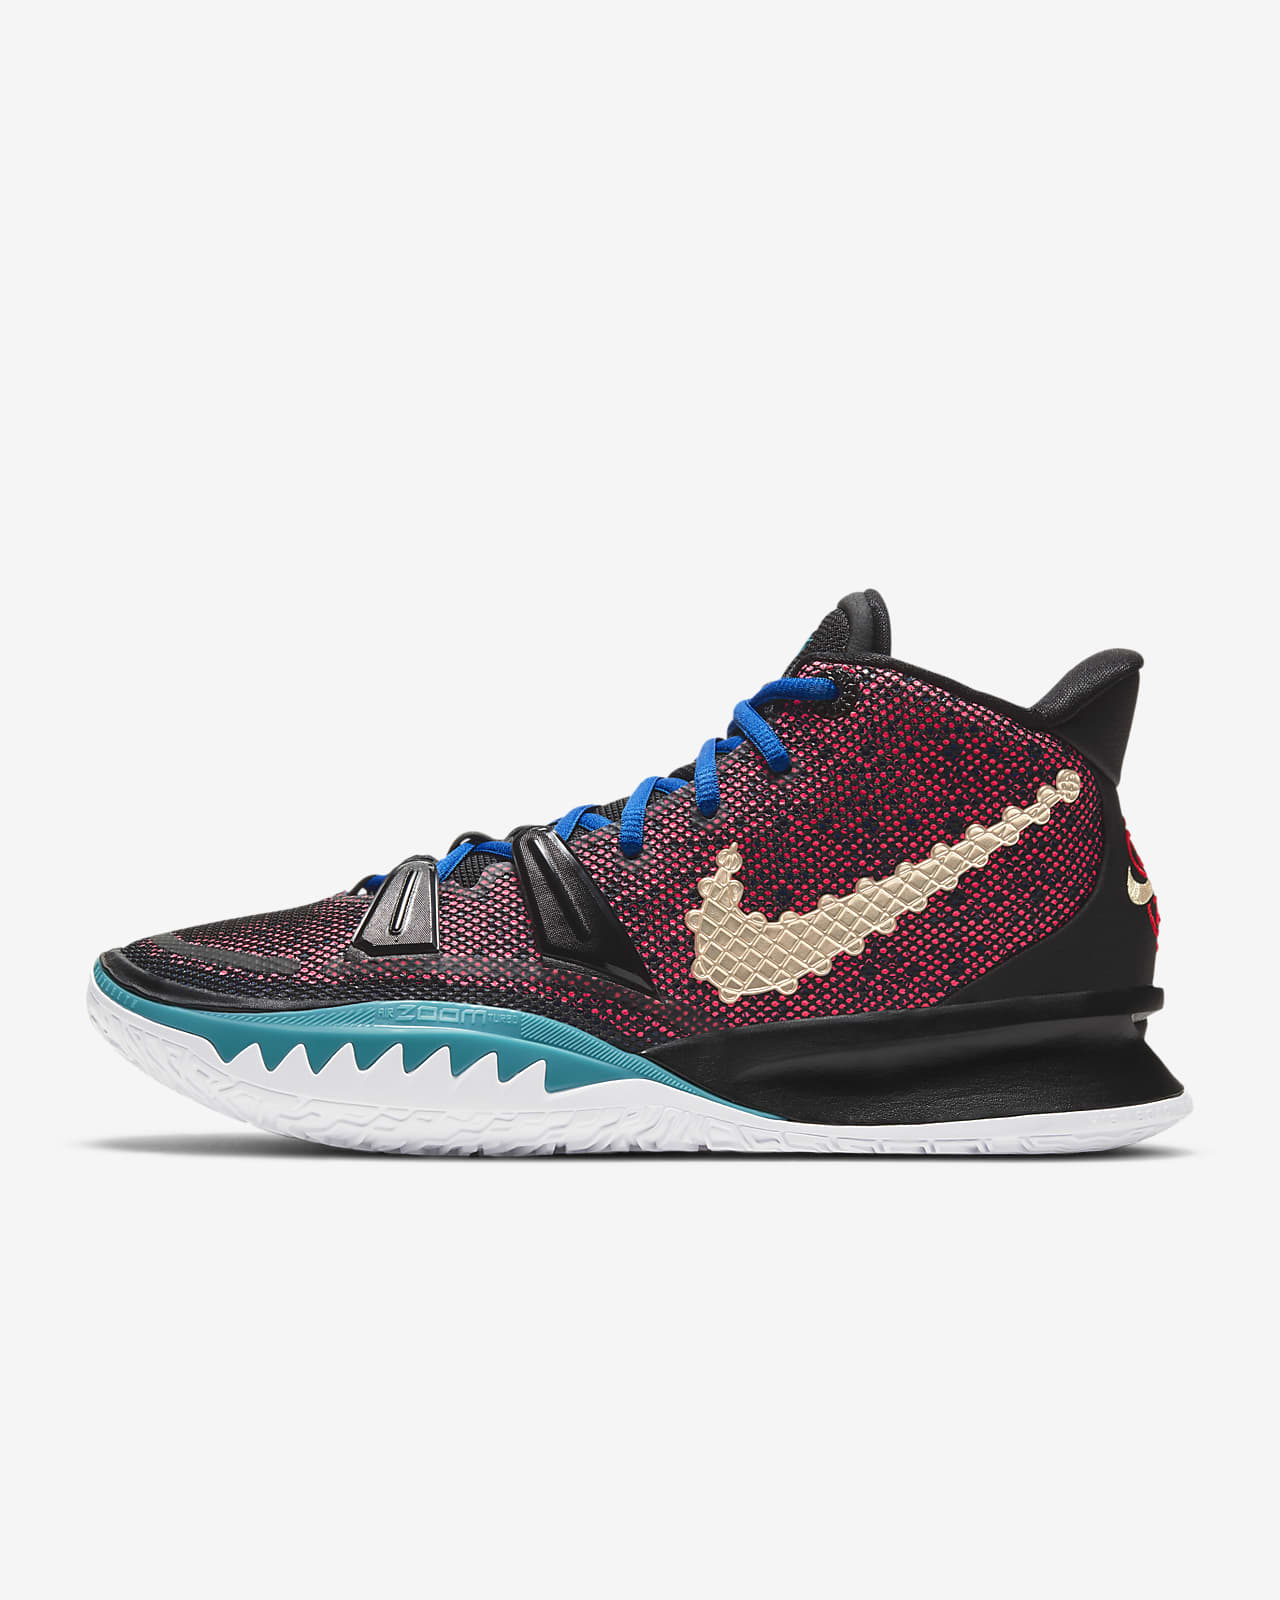 """Kyrie 7 """"Chinese New Year"""" Basketball Shoes"""